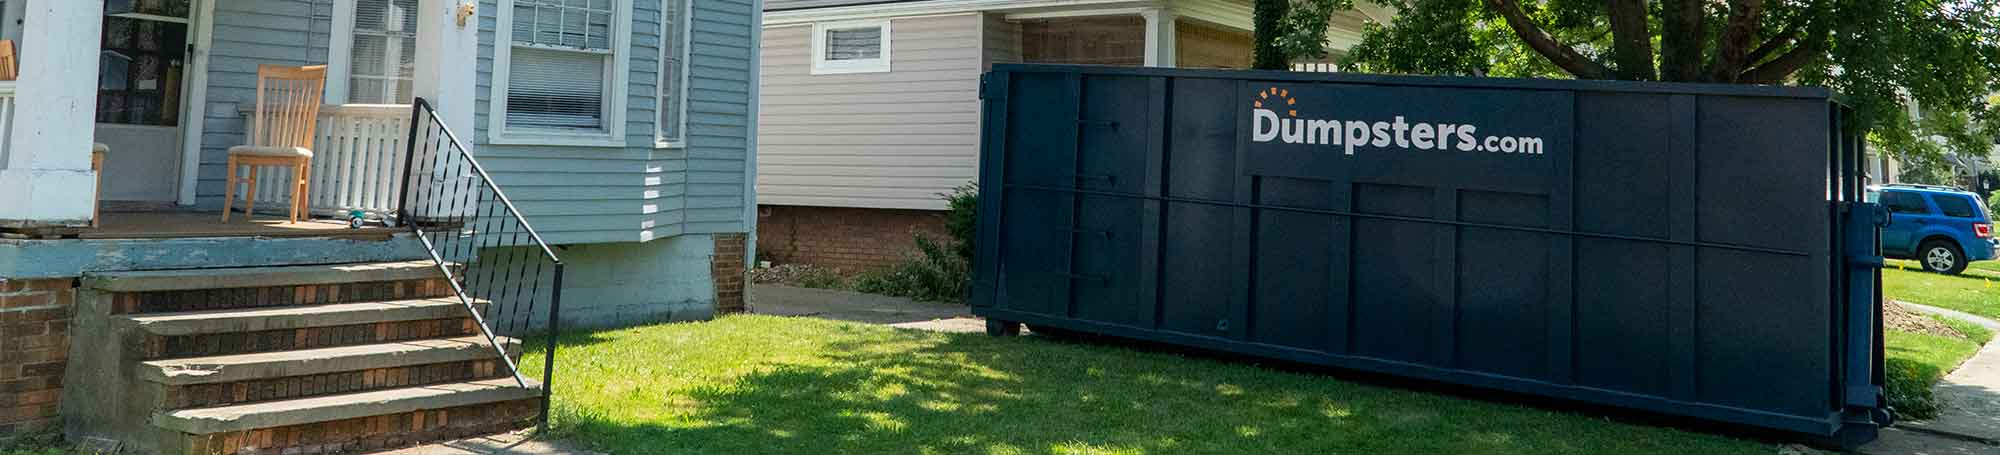 40 Yard Roll Off Dumpster in Residential Driveway Next to Blue House.